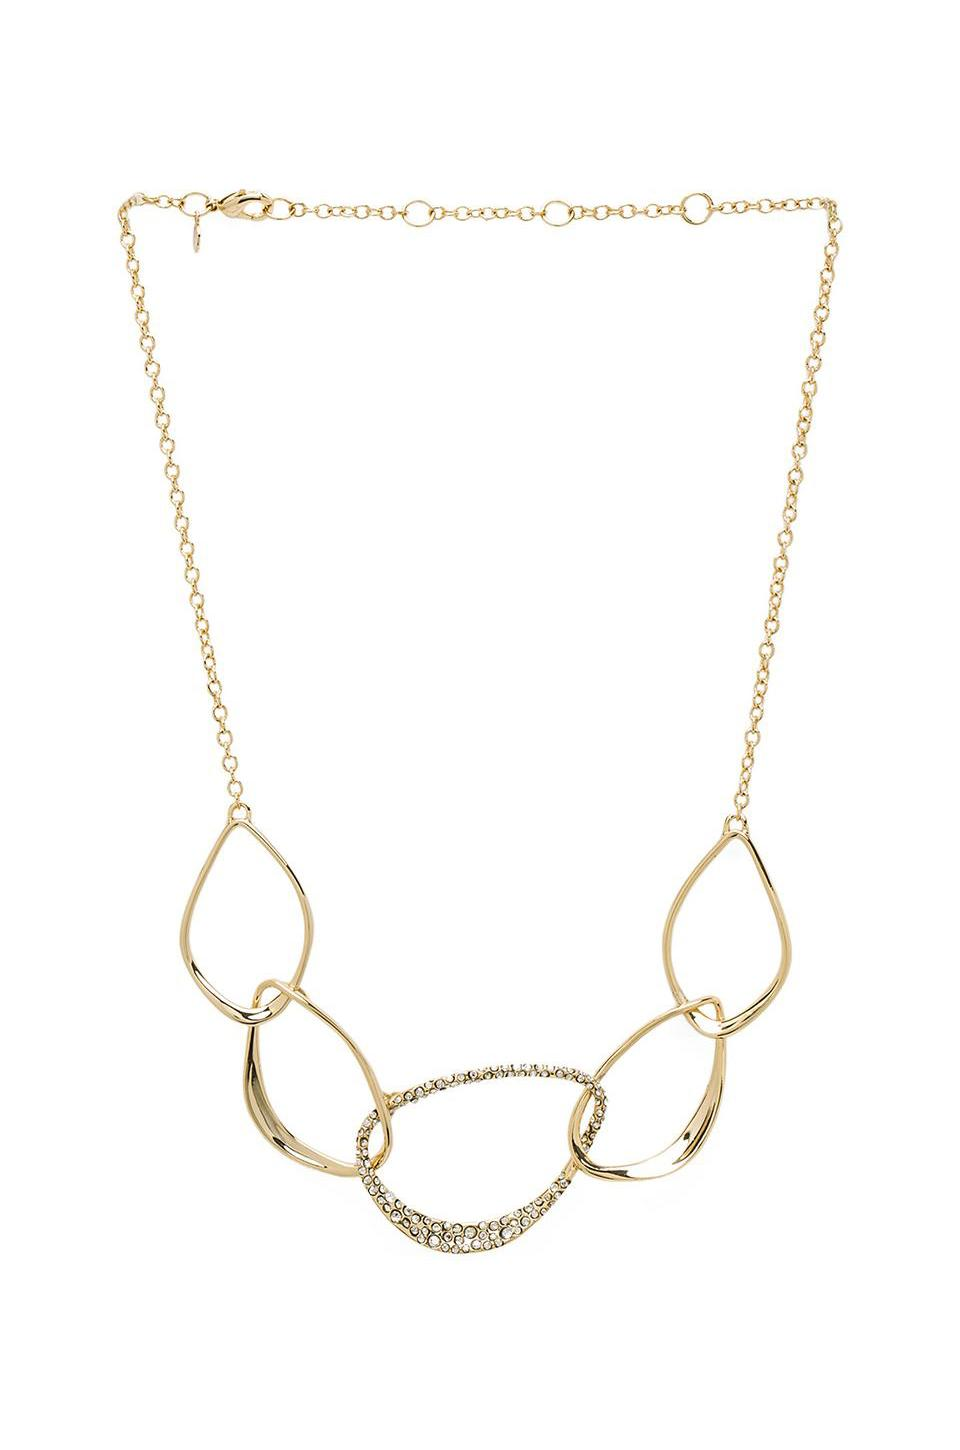 Alexis Bittar Five Link Orbiting Aura Necklace in Gold